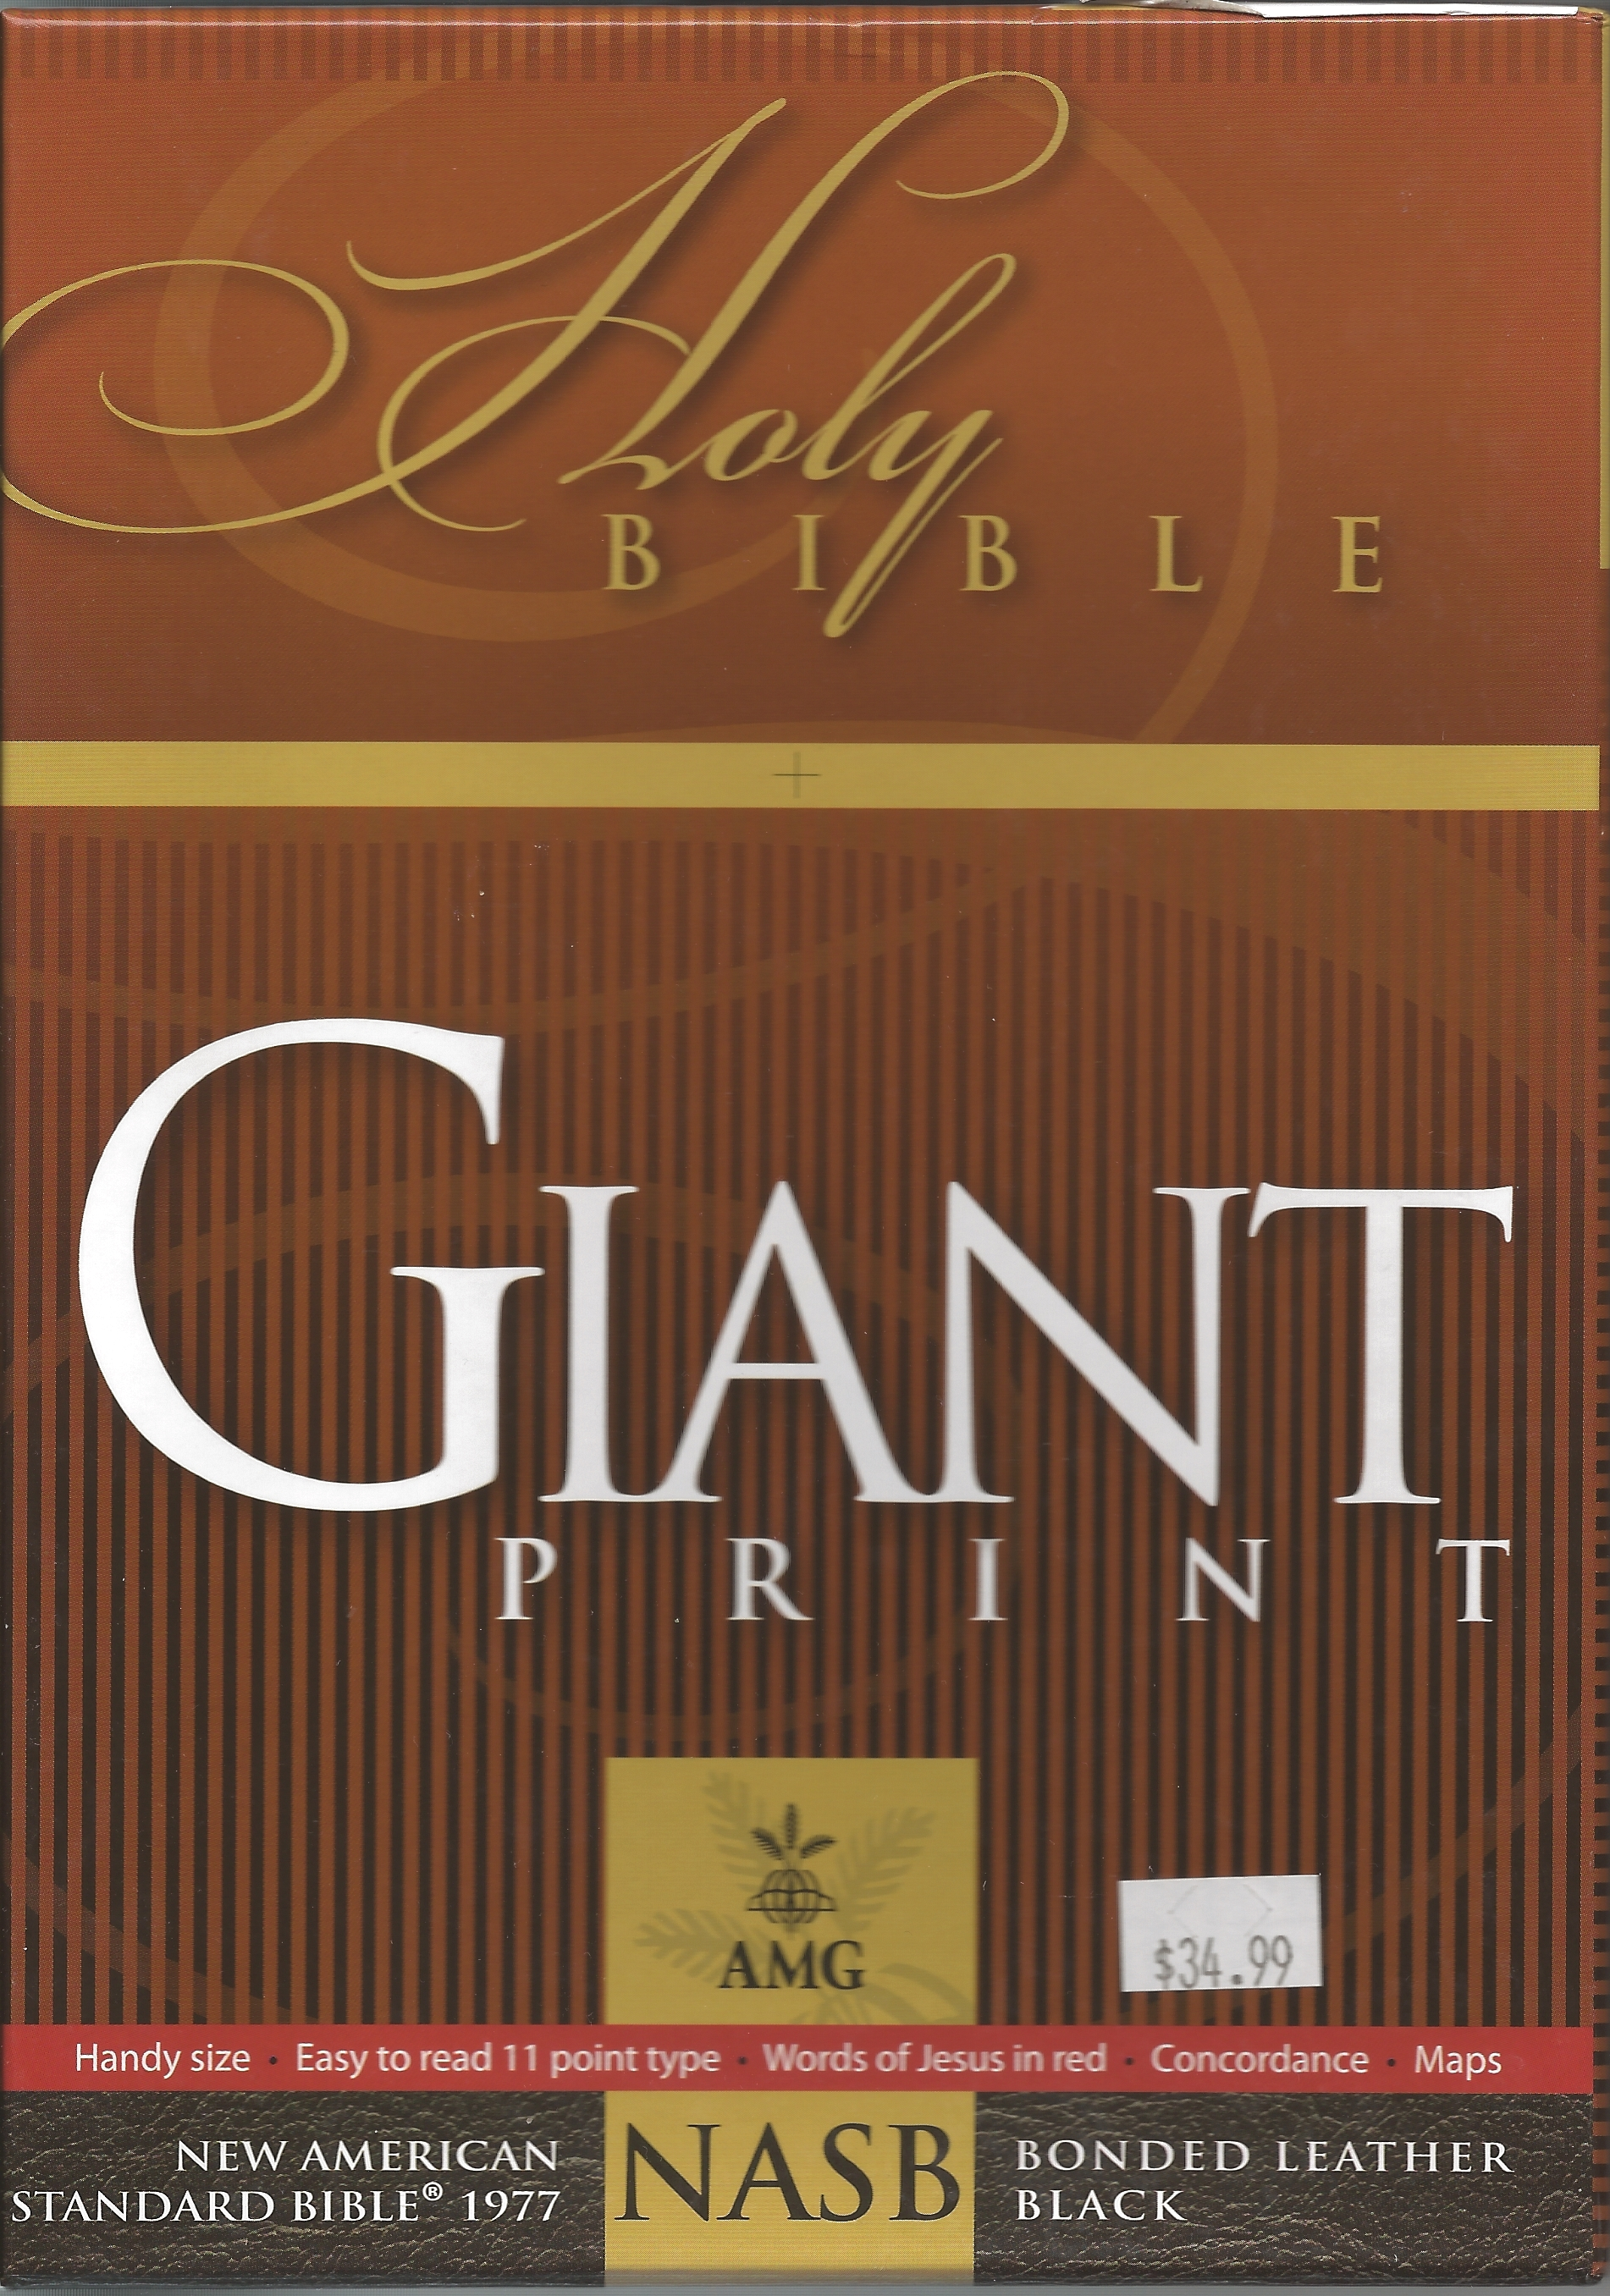 NASB GIANT PRINT HANDY-SIZE Black bonded leather